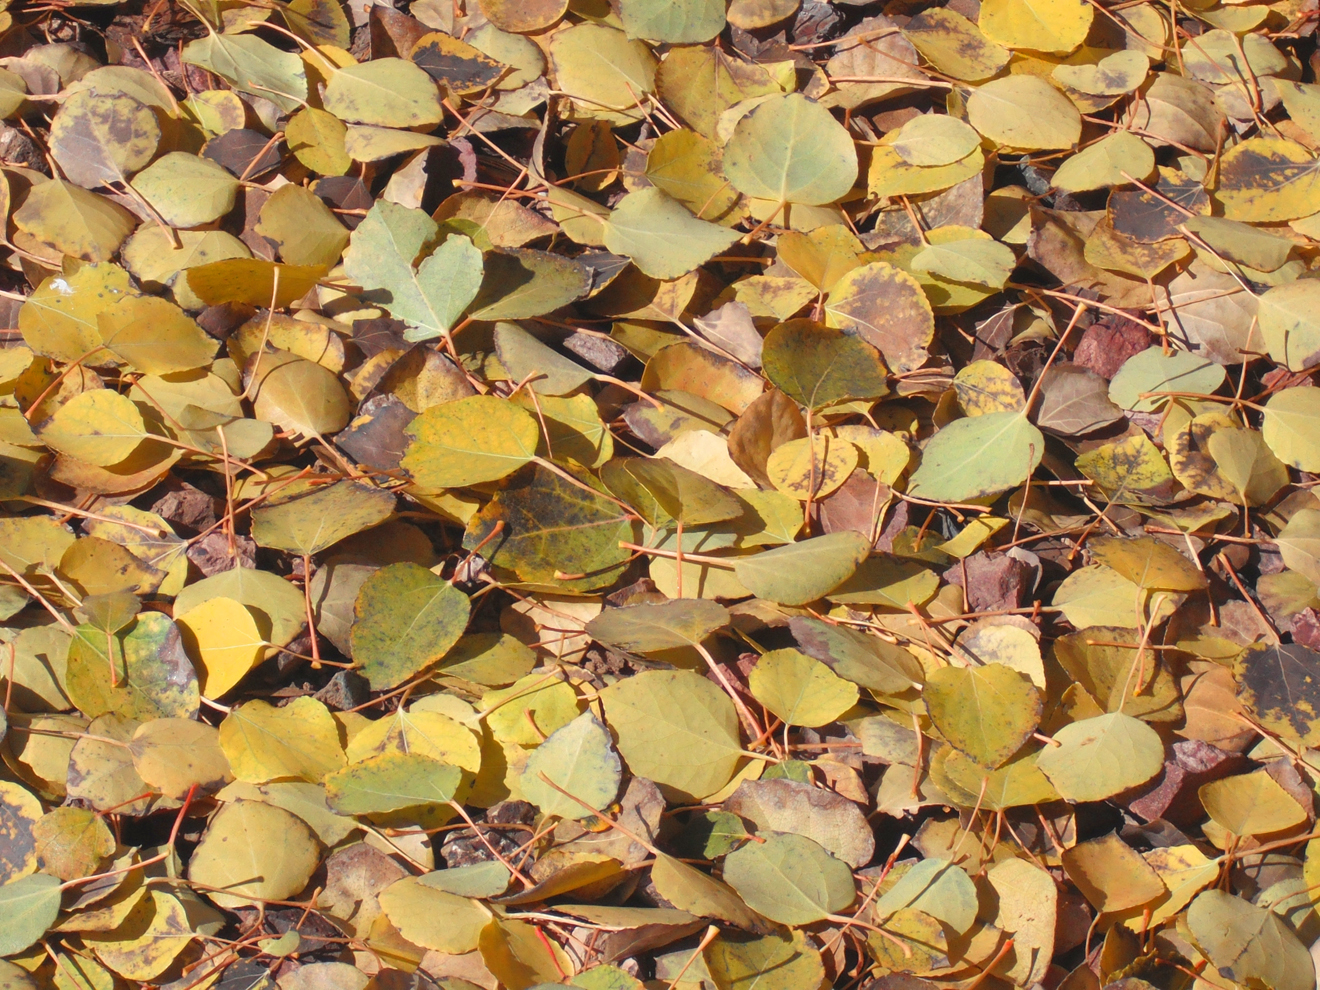 Earth - Leaf  Carpet Of Leaves Nature Wallpaper